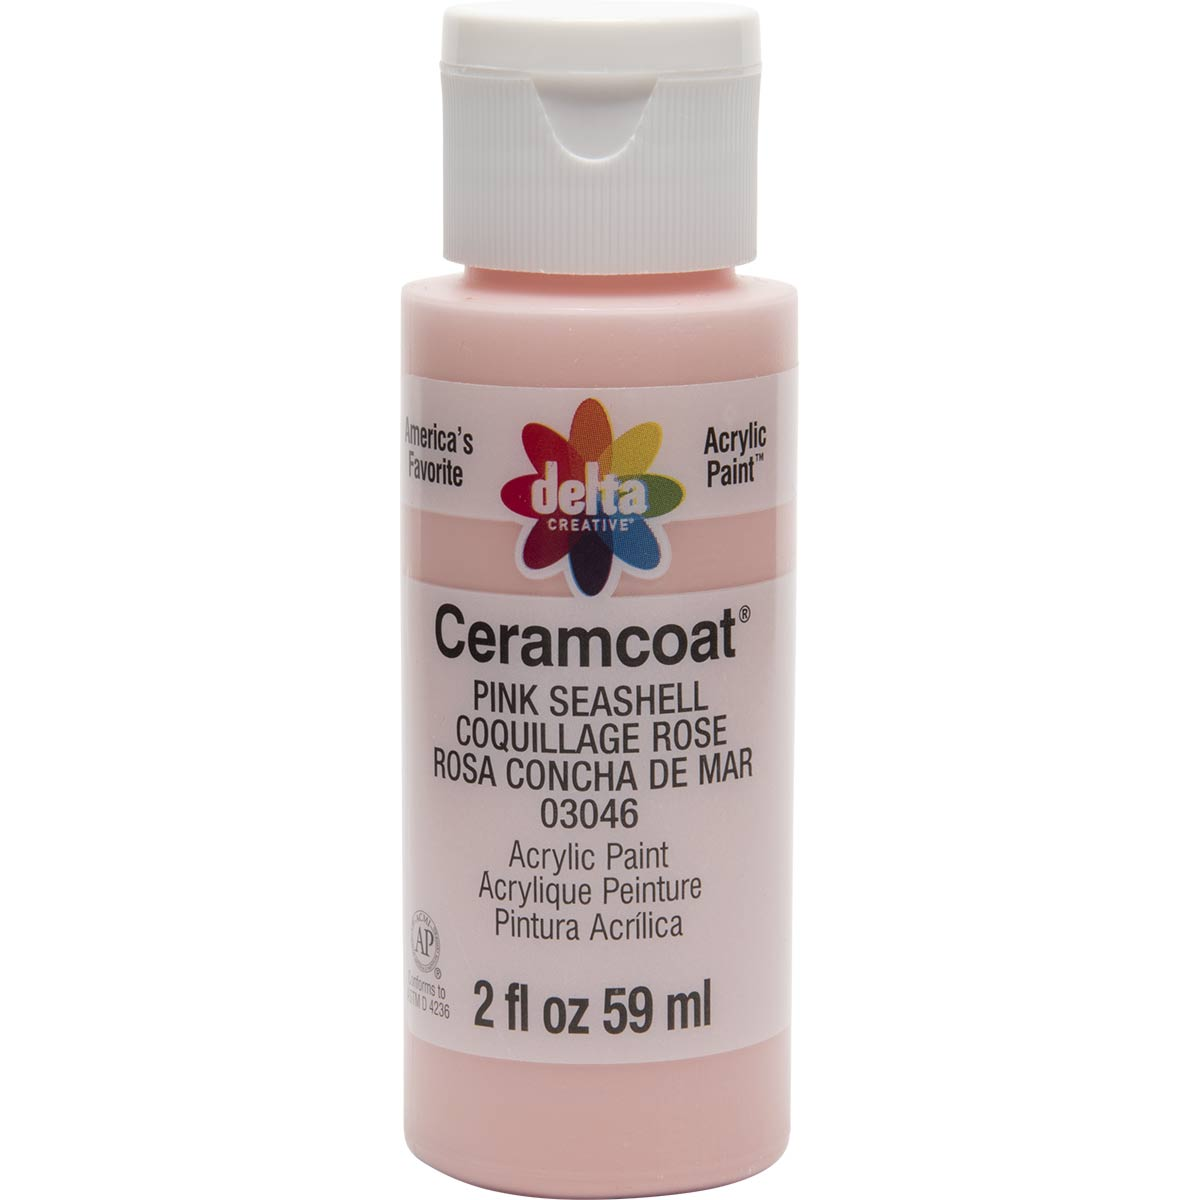 Delta Ceramcoat ® Acrylic Paint - Pink Seashell, 2 oz. - 03046